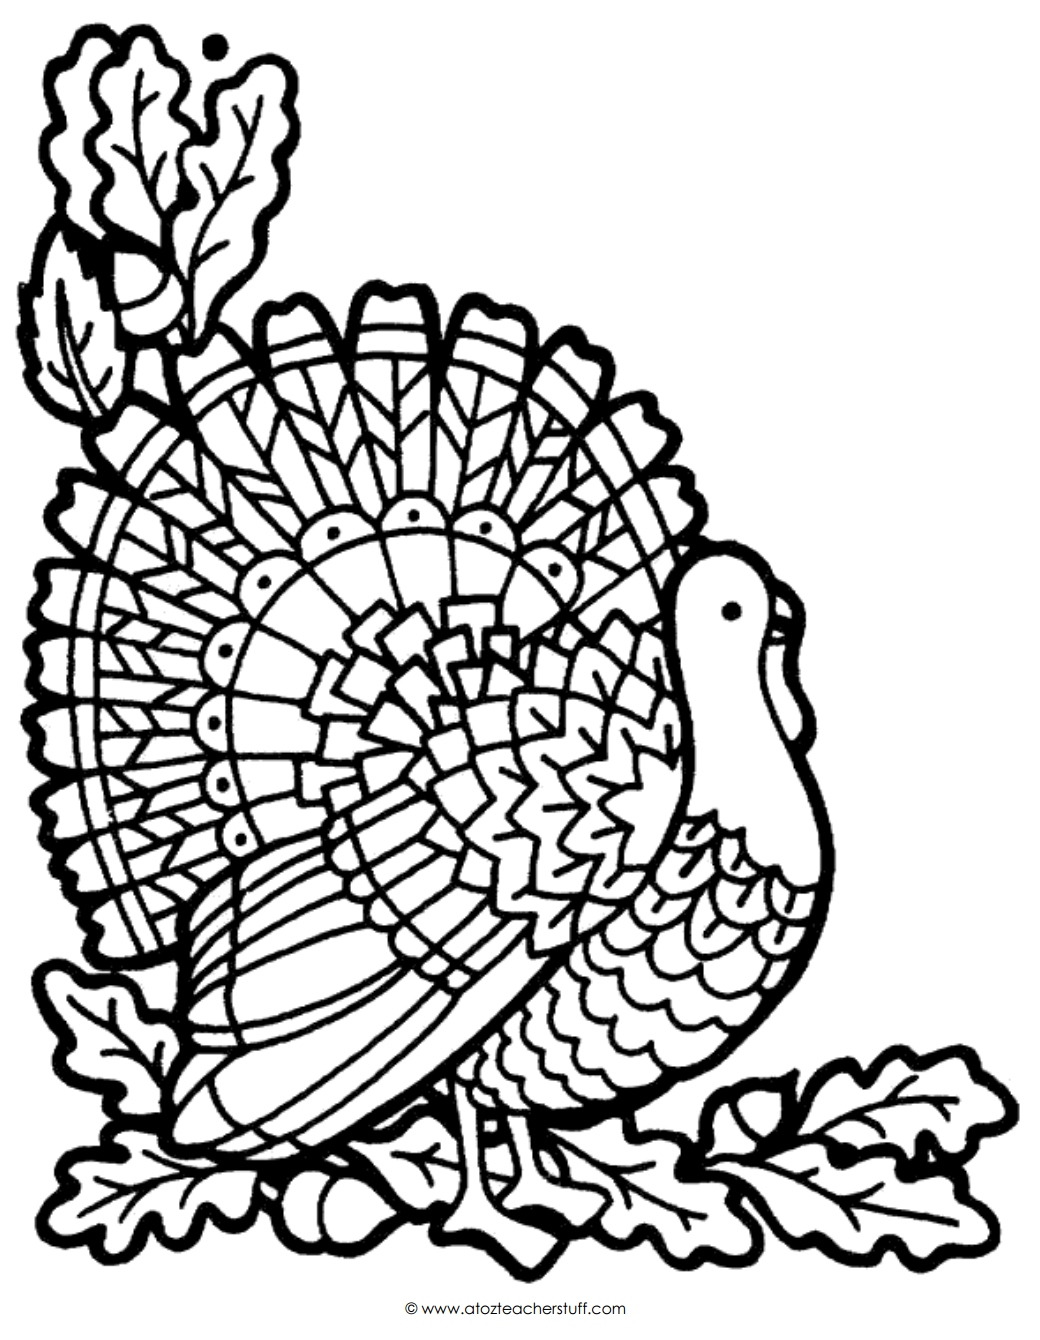 1040x1340 Turkey Coloring Pages Printable Awesome Free Printable Turkey